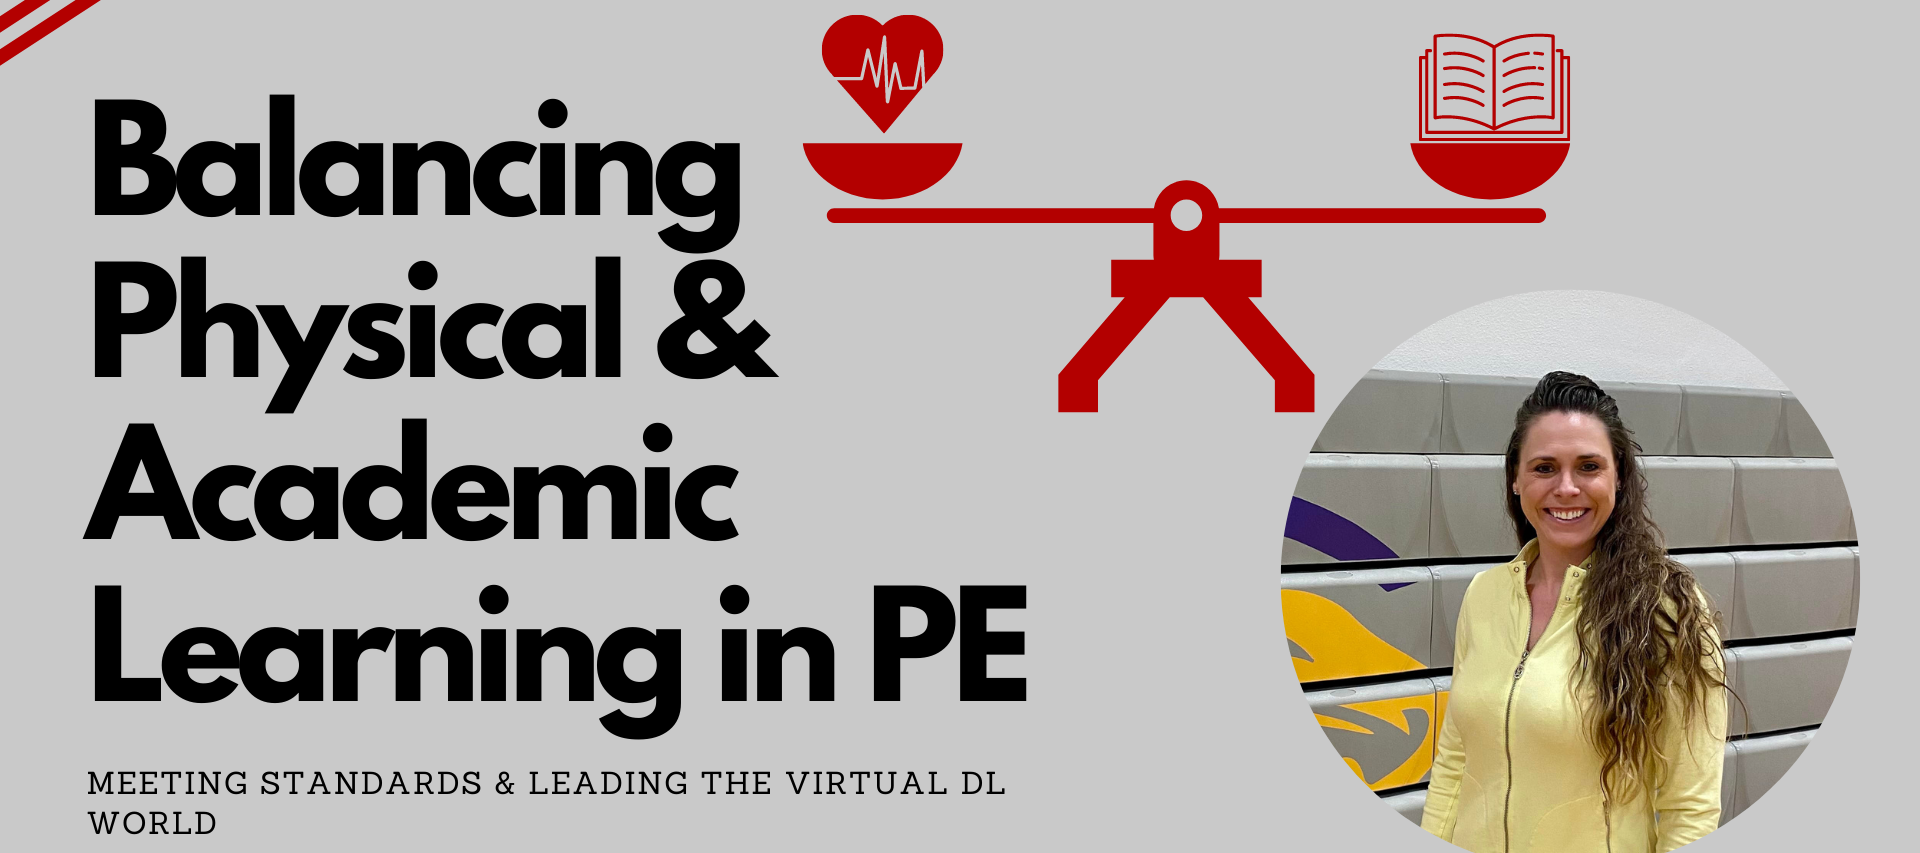 Balancing Physical & Academic Learning in PE